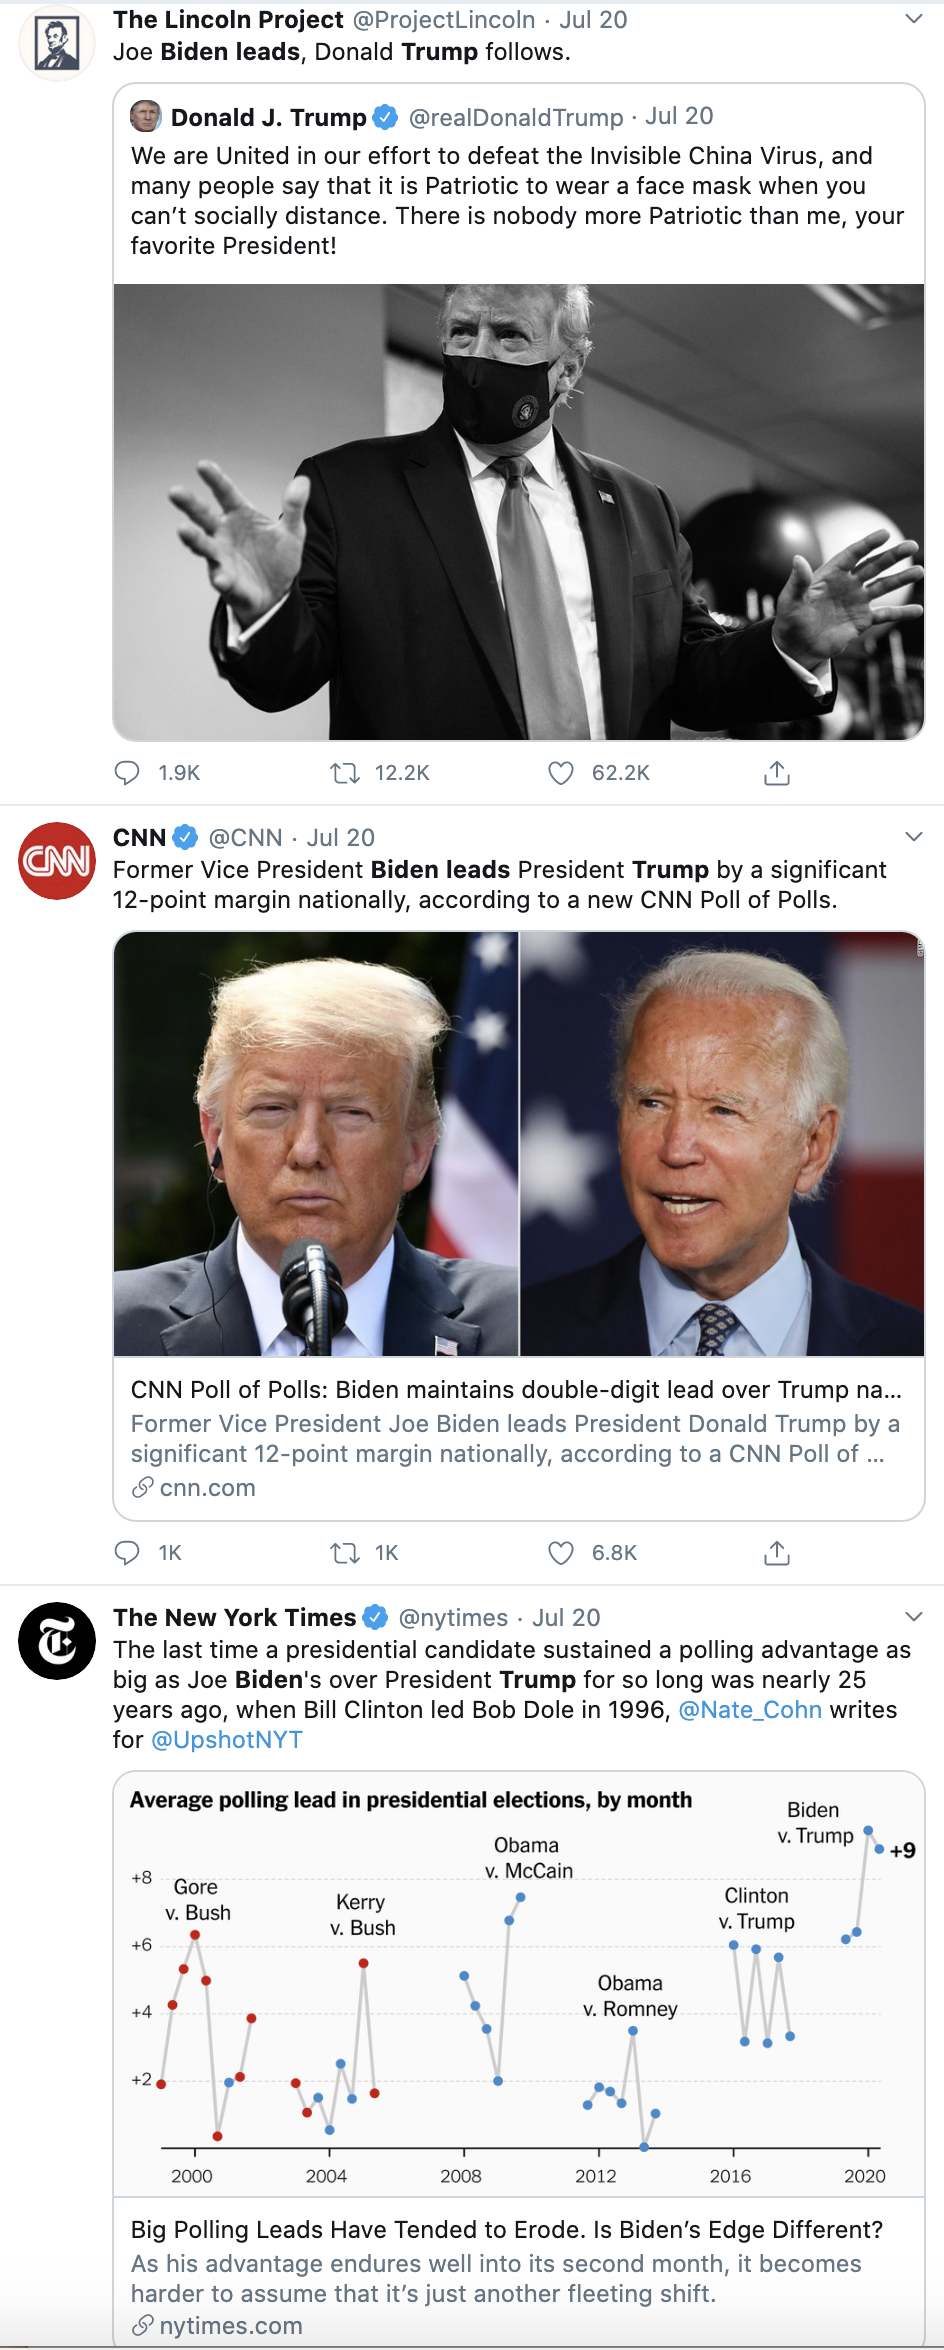 Screen-Shot-2020-07-22-at-11.13.43-AM Biden Catapults Past Trump New Reuters/Ipsos Poll With 8 Point Surge Featured National Security Politics Polls Top Stories